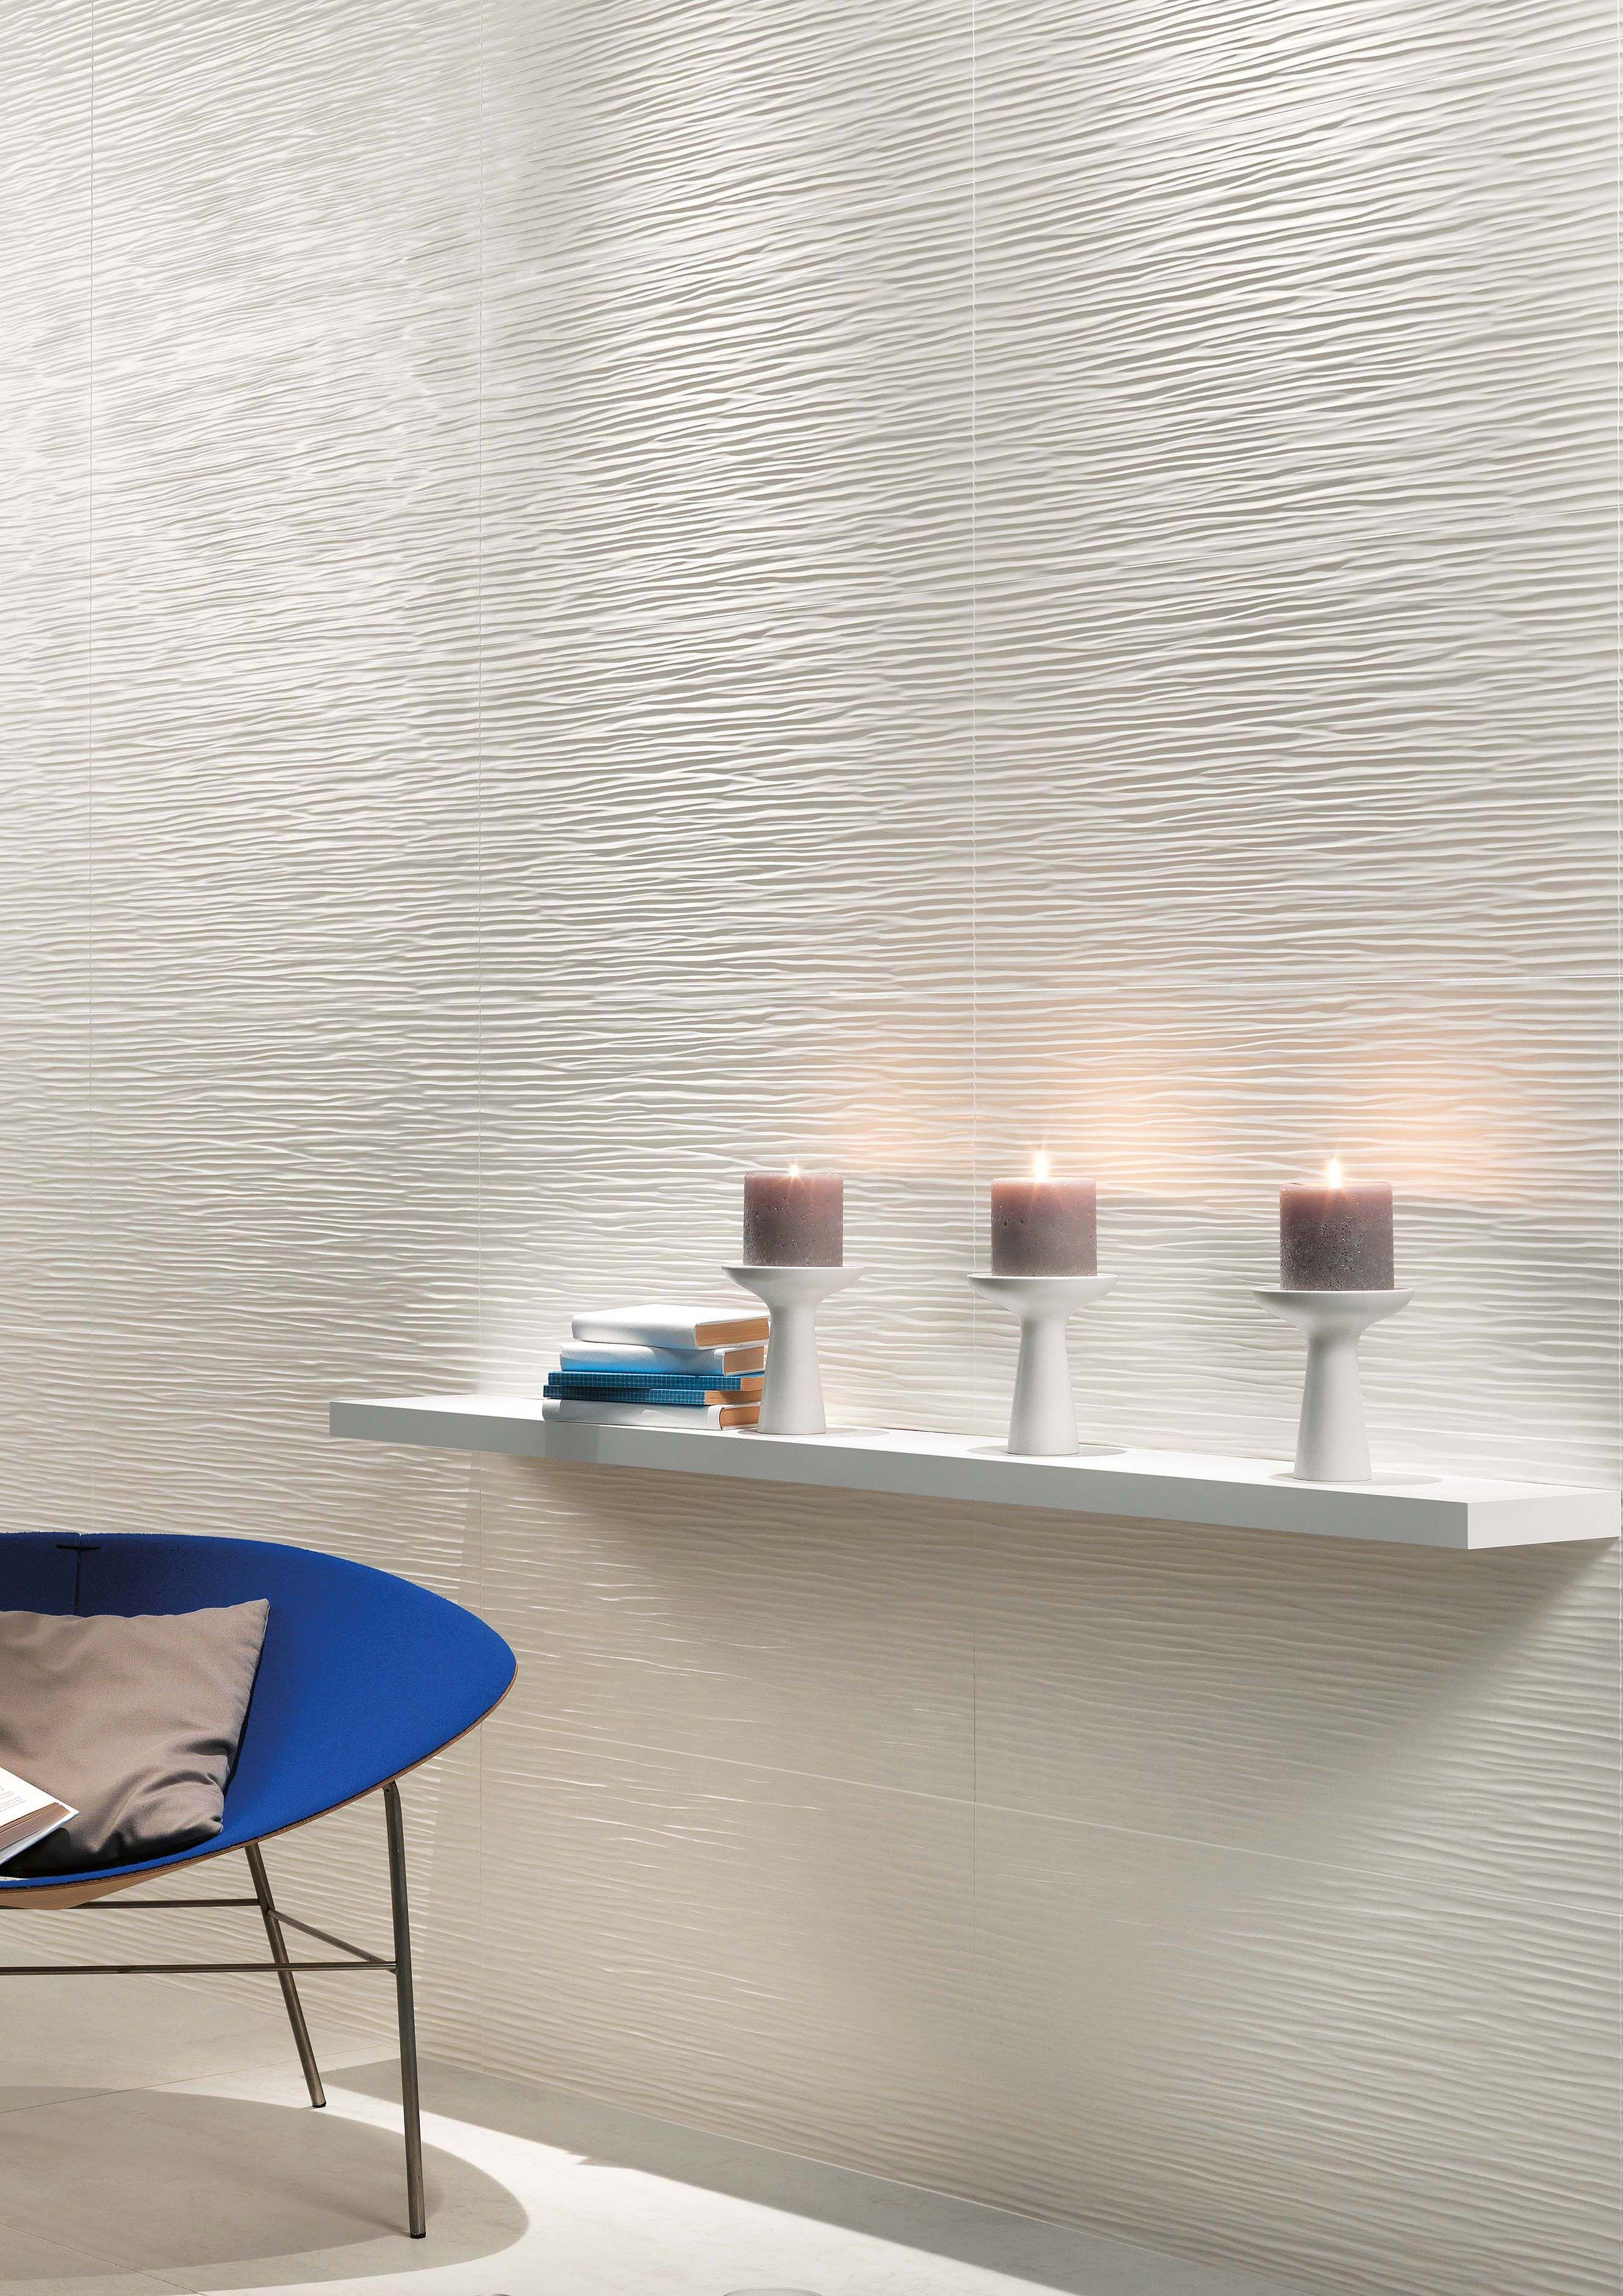 3dwave ceramic wall tiles matt finish atlasconcorde made in italy